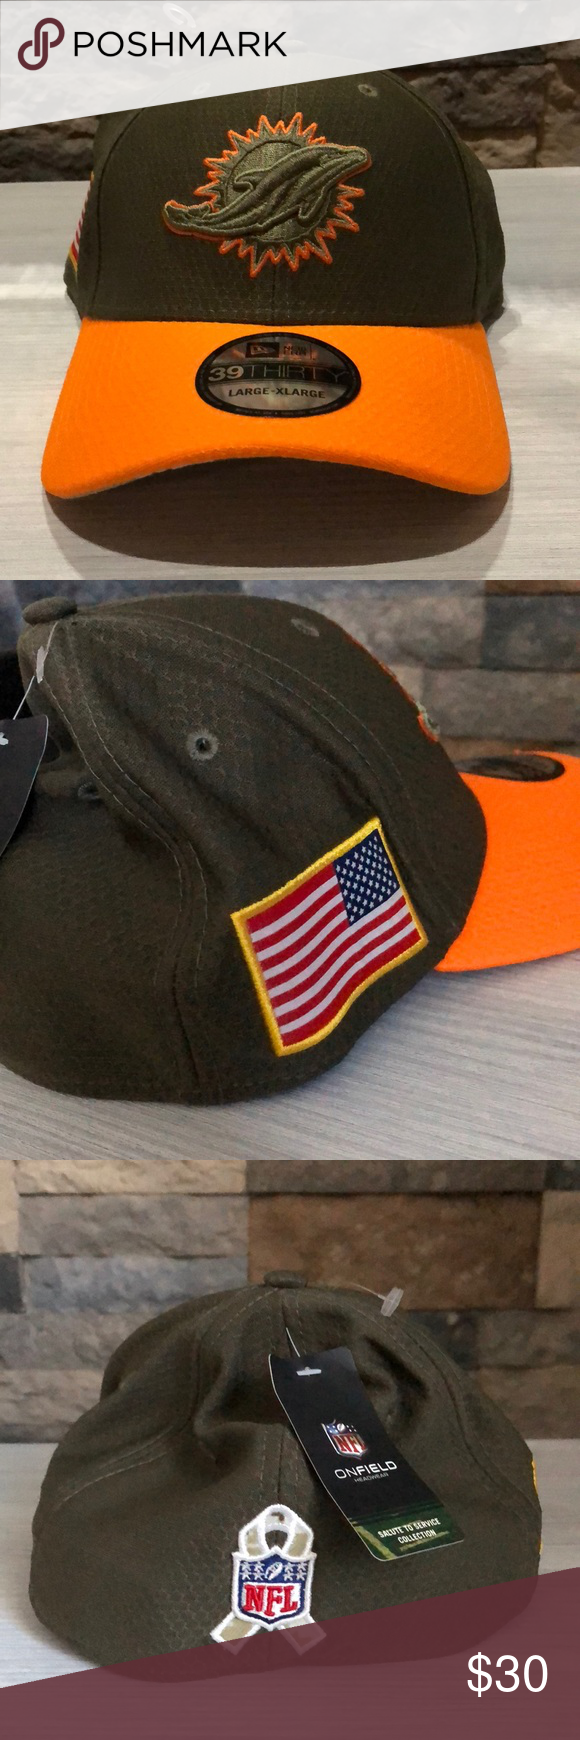 72e7dec7f2a92d Miami Dolphins Salute To Service Flexfit Cap Show support for the troops  while cheering on your favorite team in this official licensed 39Thirty  Salute to ...